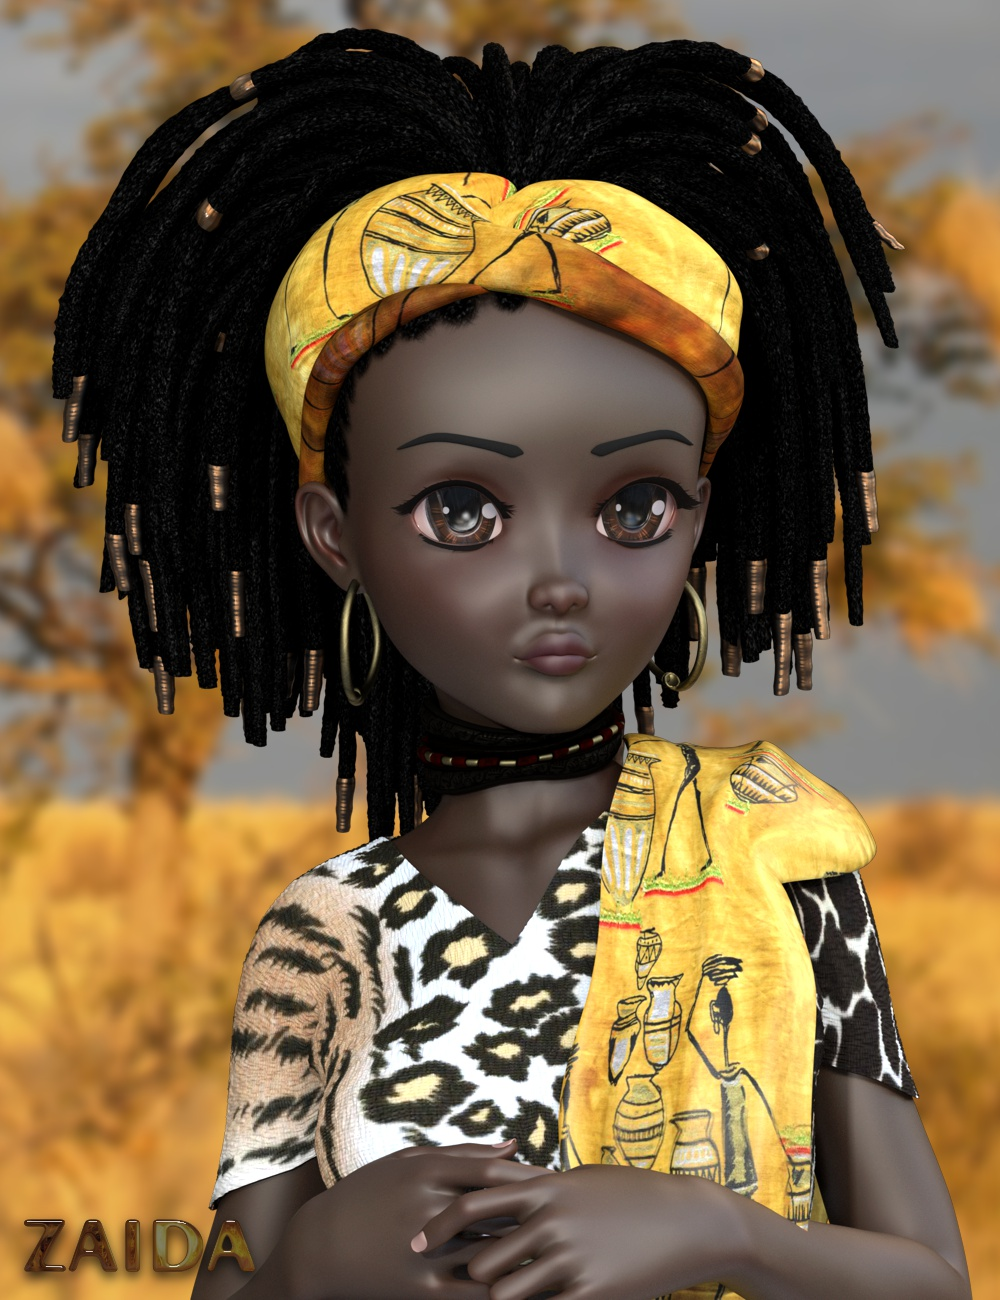 GHD StoryBook - Faces and Morphs for Sakura 8 by: 3D-GHDesign, 3D Models by Daz 3D